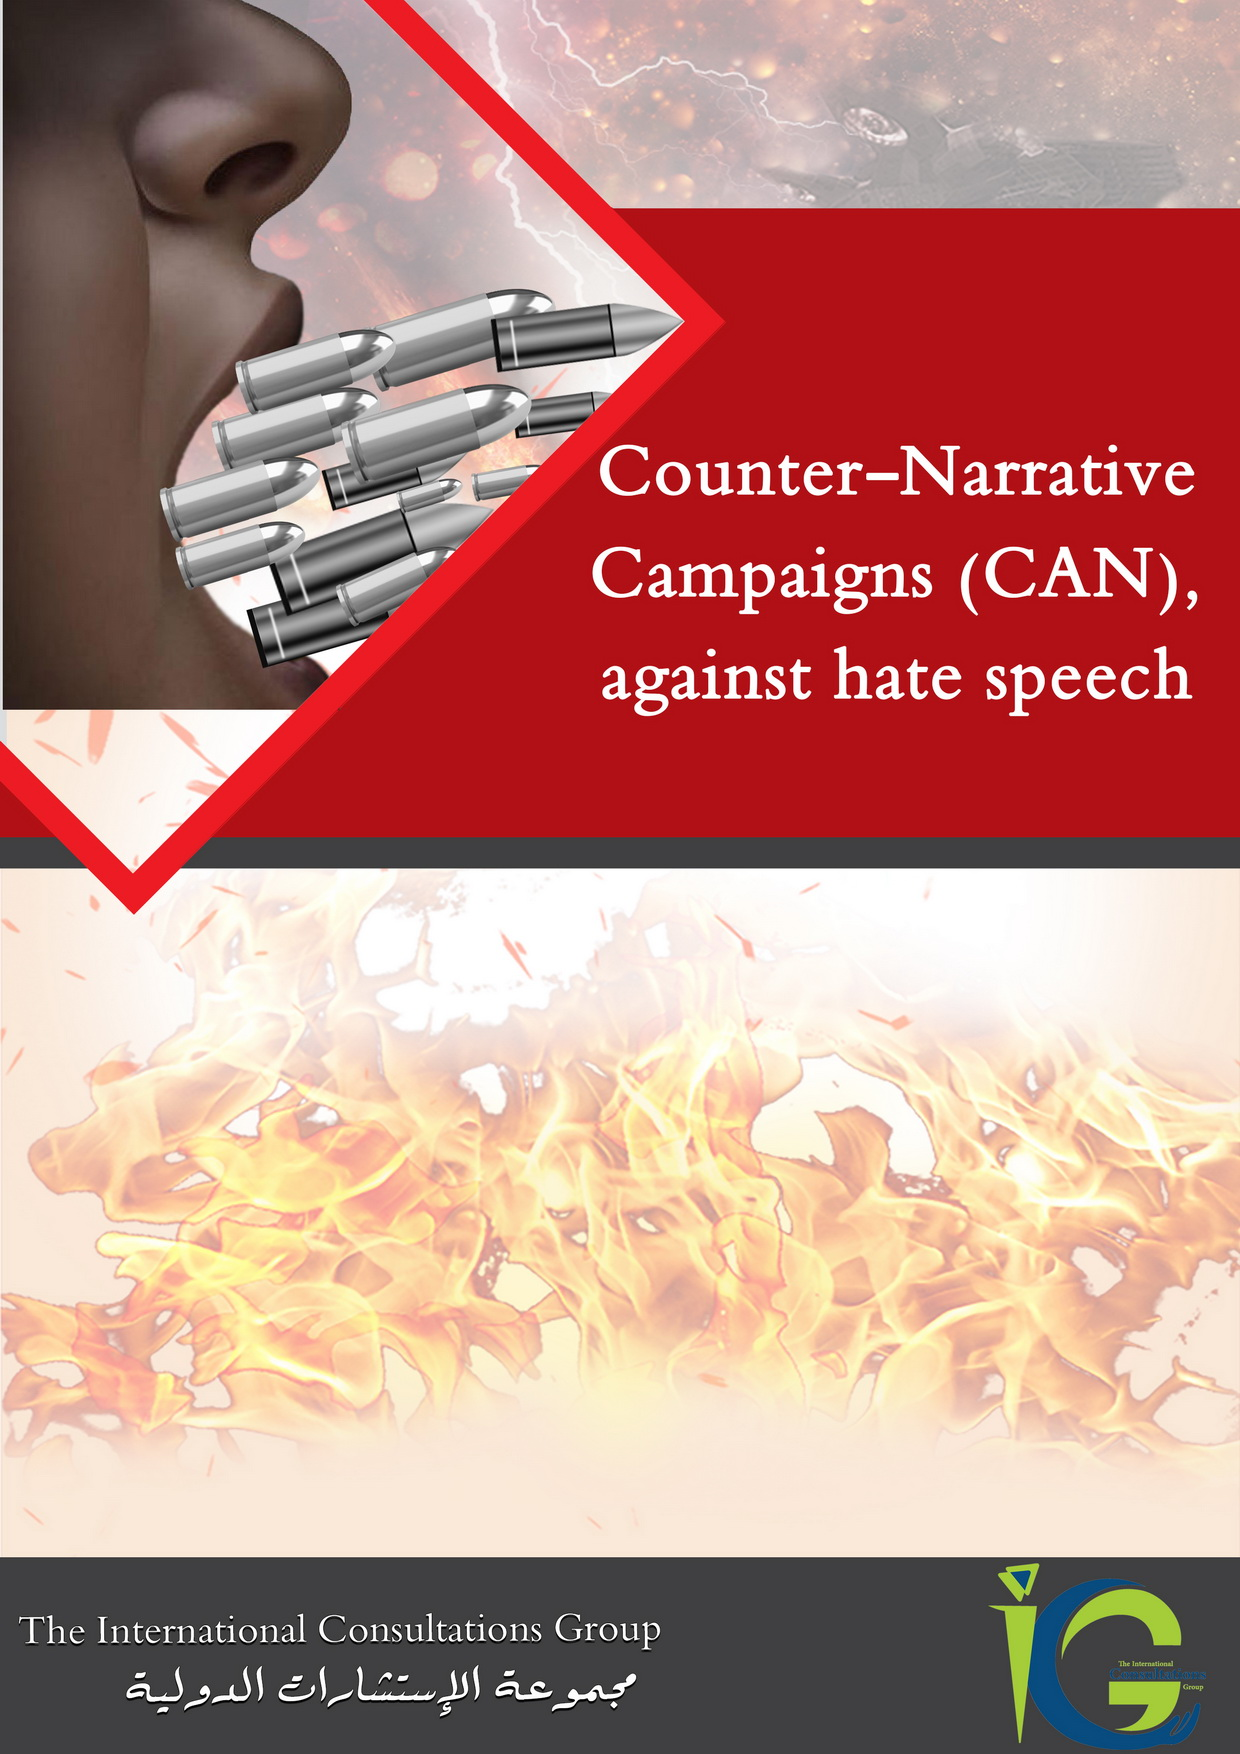 !Counter-Narrative Campaigns (CAN), against hate speech